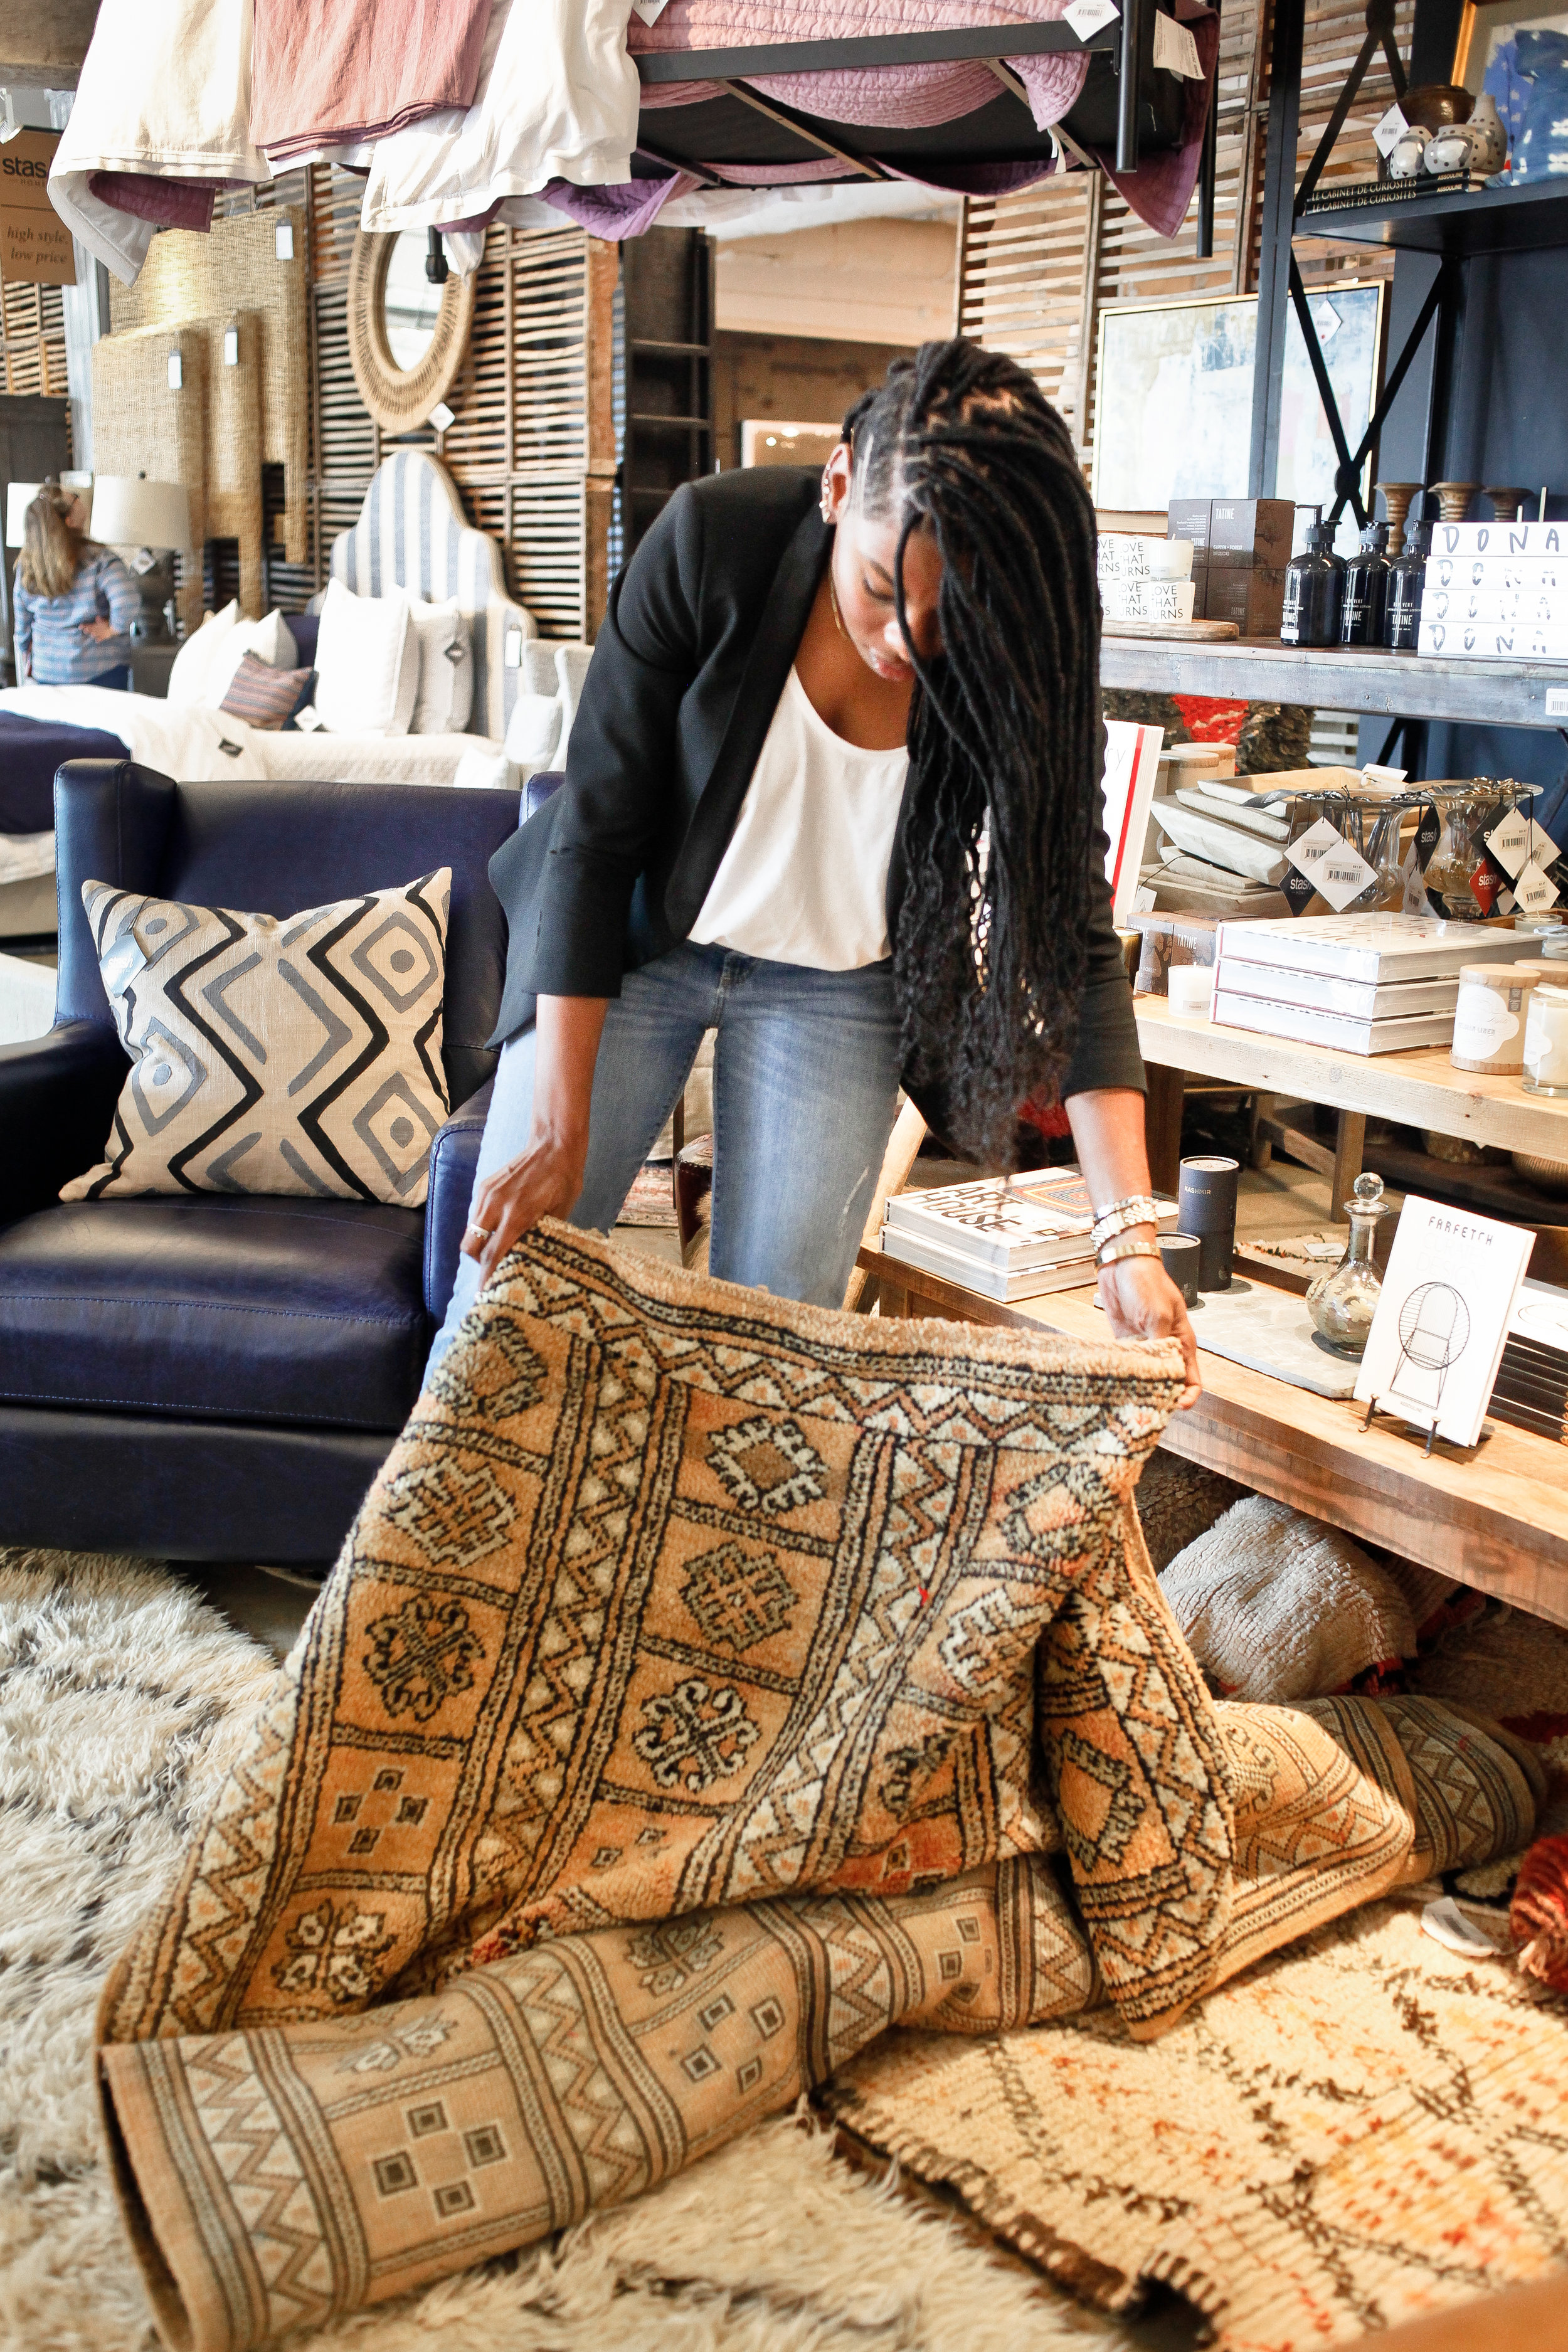 The one-of-a-kind rugs are a fav and keep me coming back. The selection is ever changing so you have to jump on things quickly!